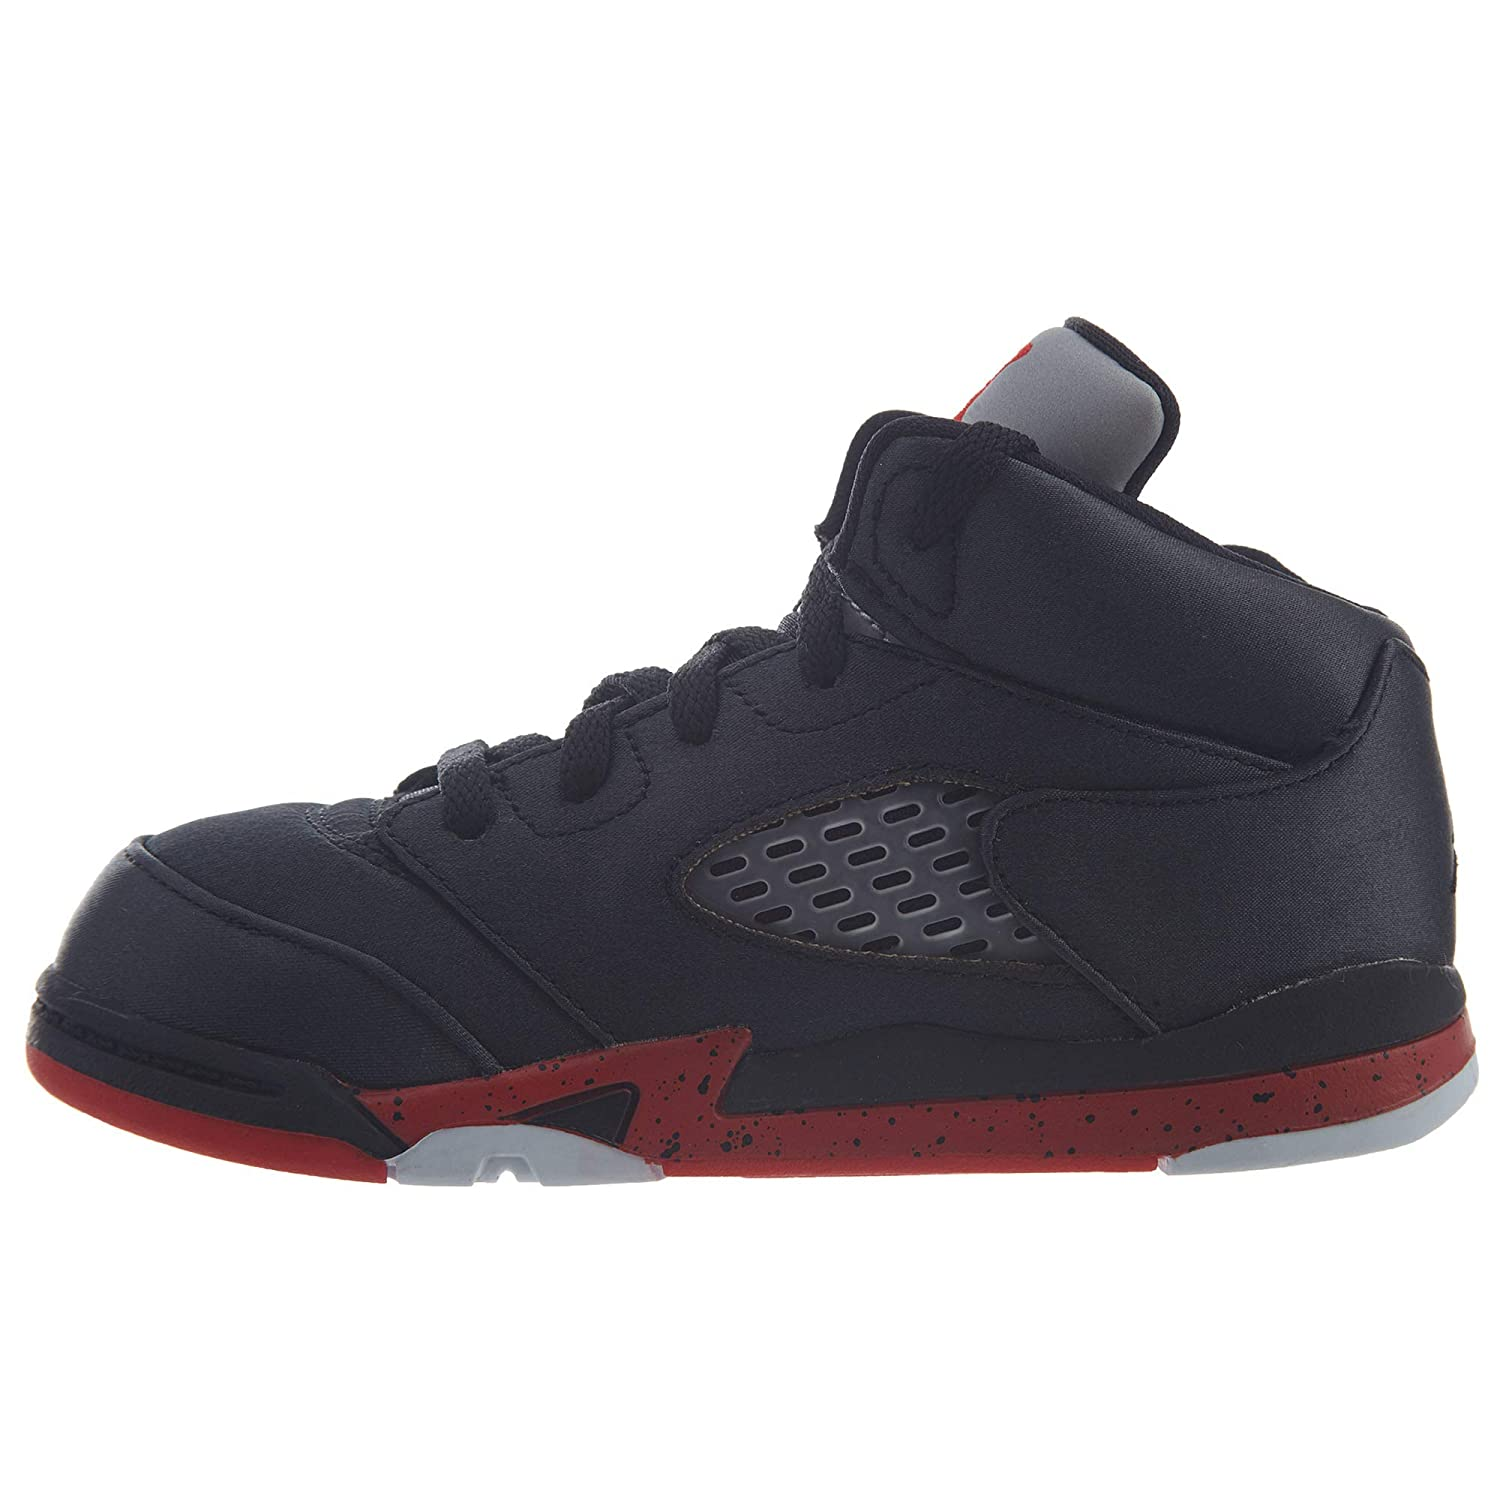 new product 1d059 56edb Amazon.com   Jordan 5 Retro Satin Bred Toddlers   Sneakers